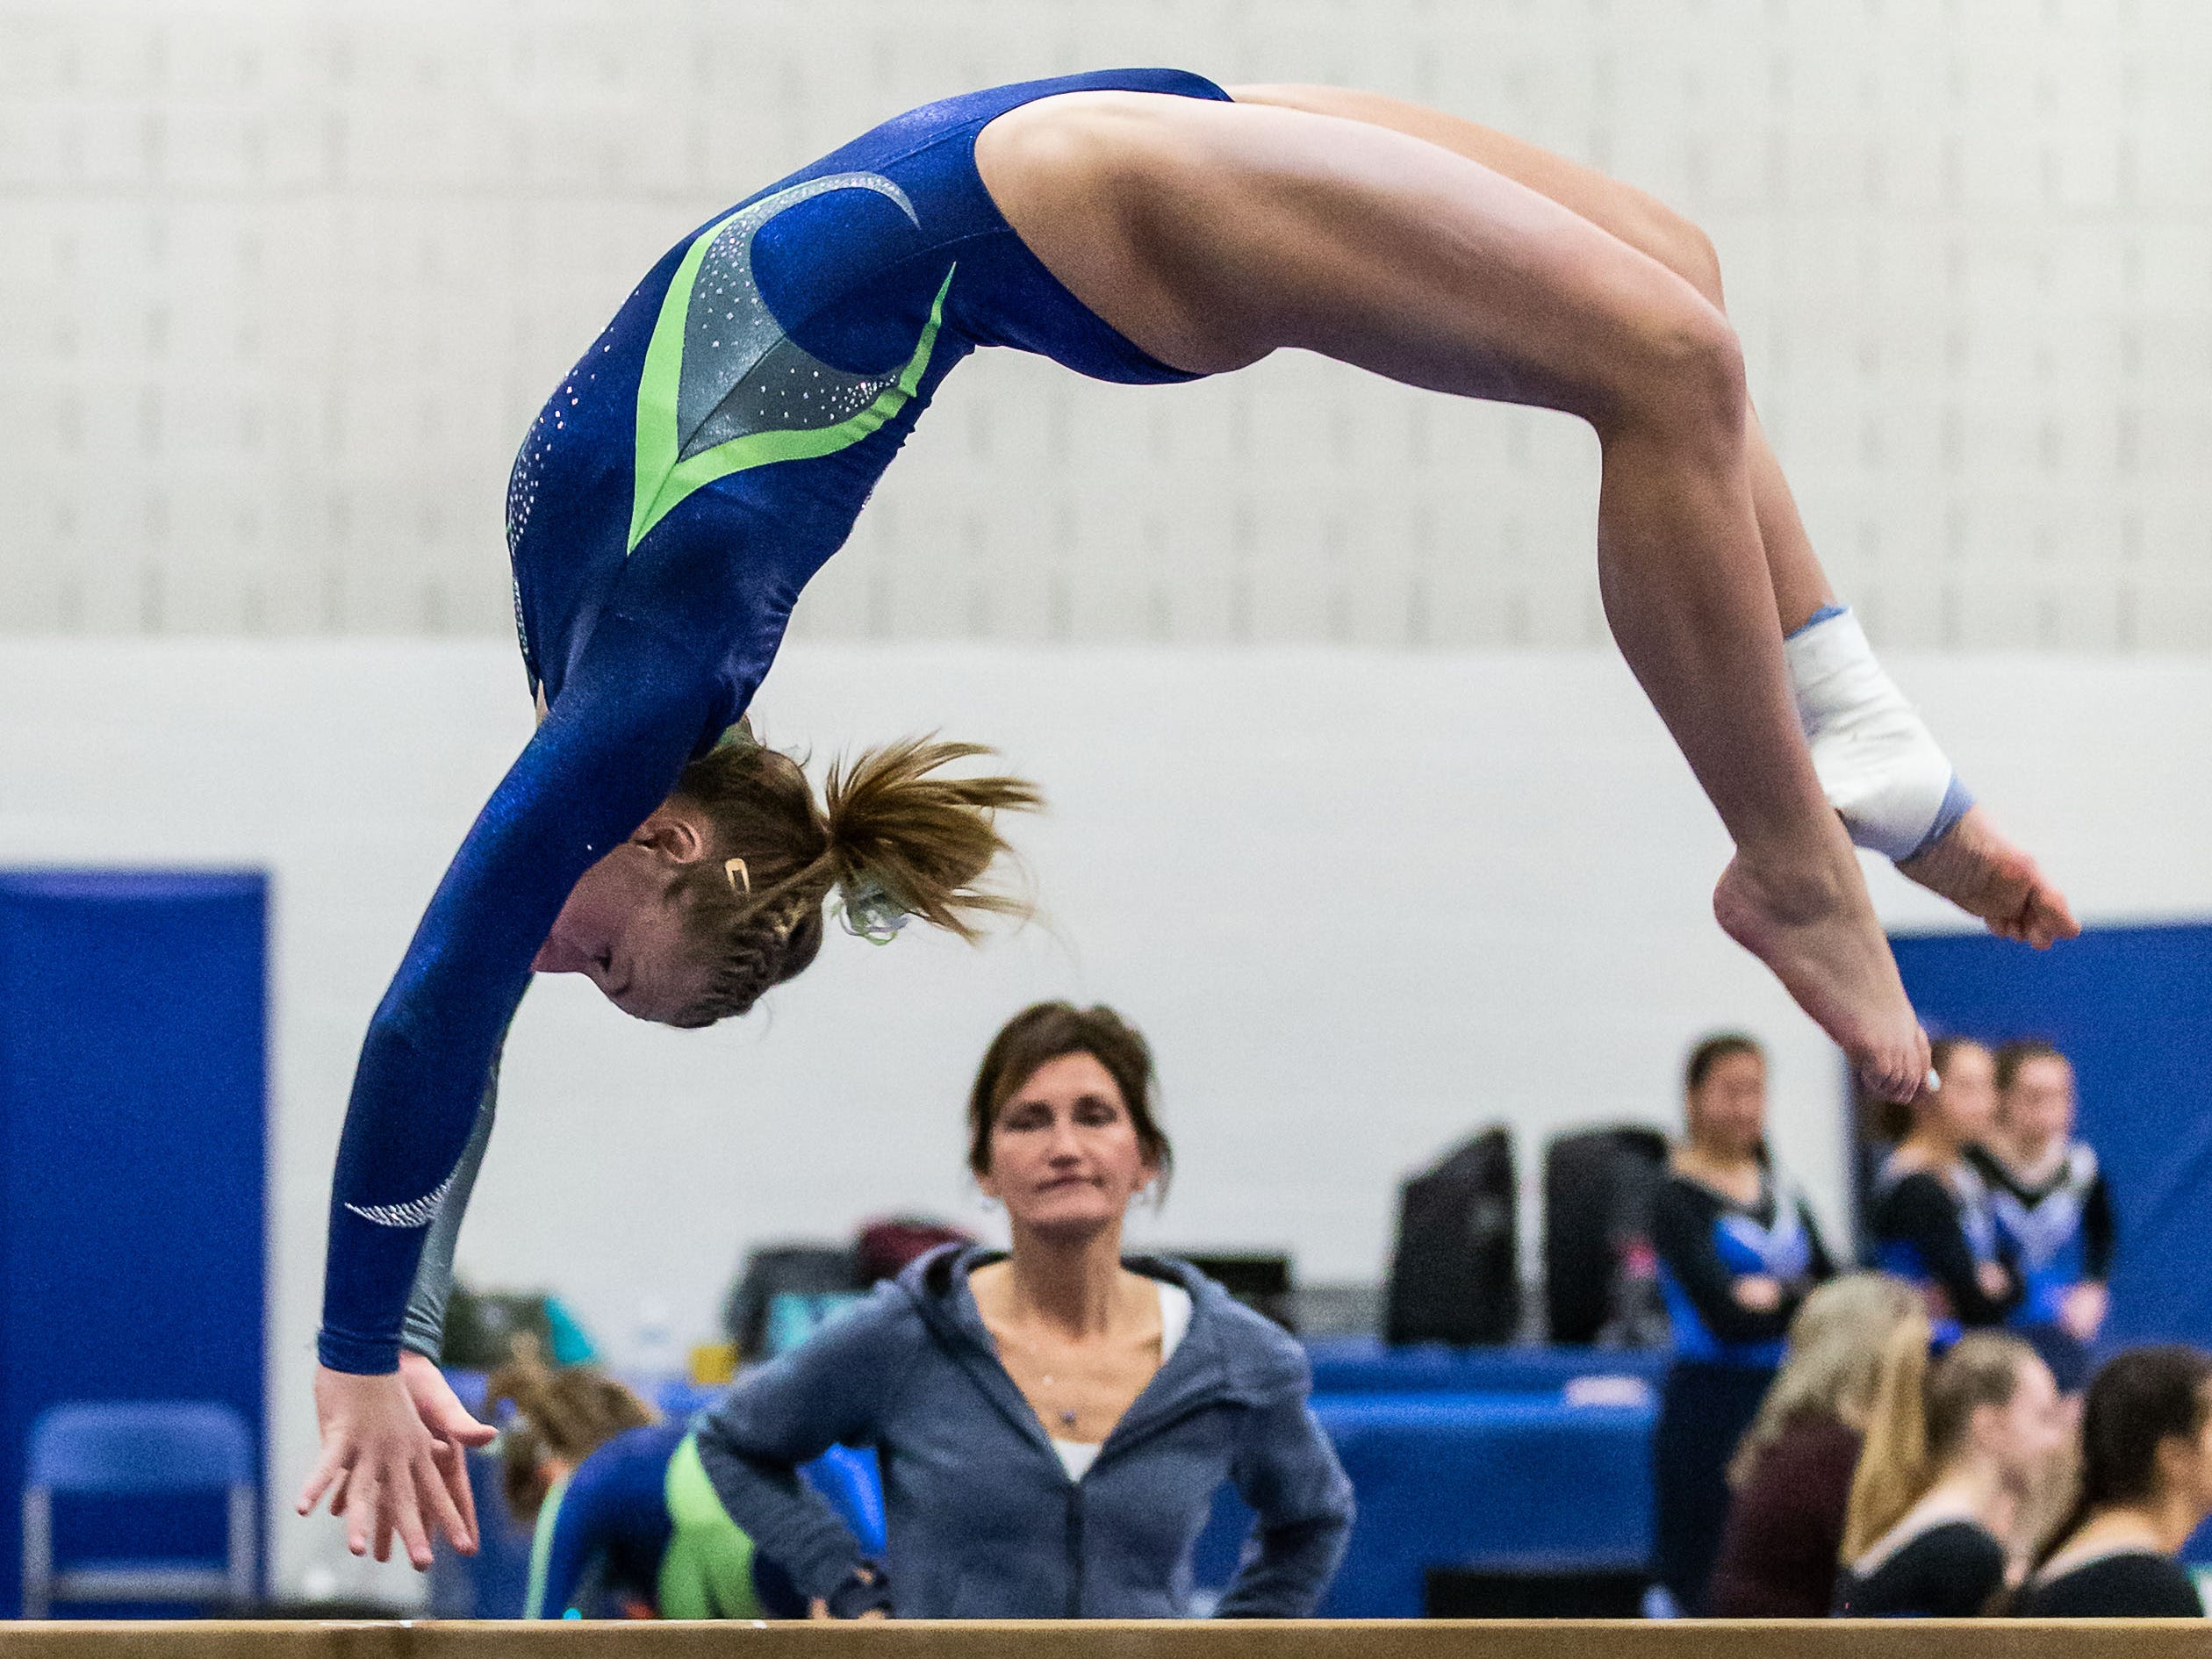 Whitefish Bay gymnast Addie Gallun competes on the beam during the meet at Nicolet on Thursday, Jan. 3, 2019. Gallun won the event with a score of 9.30.